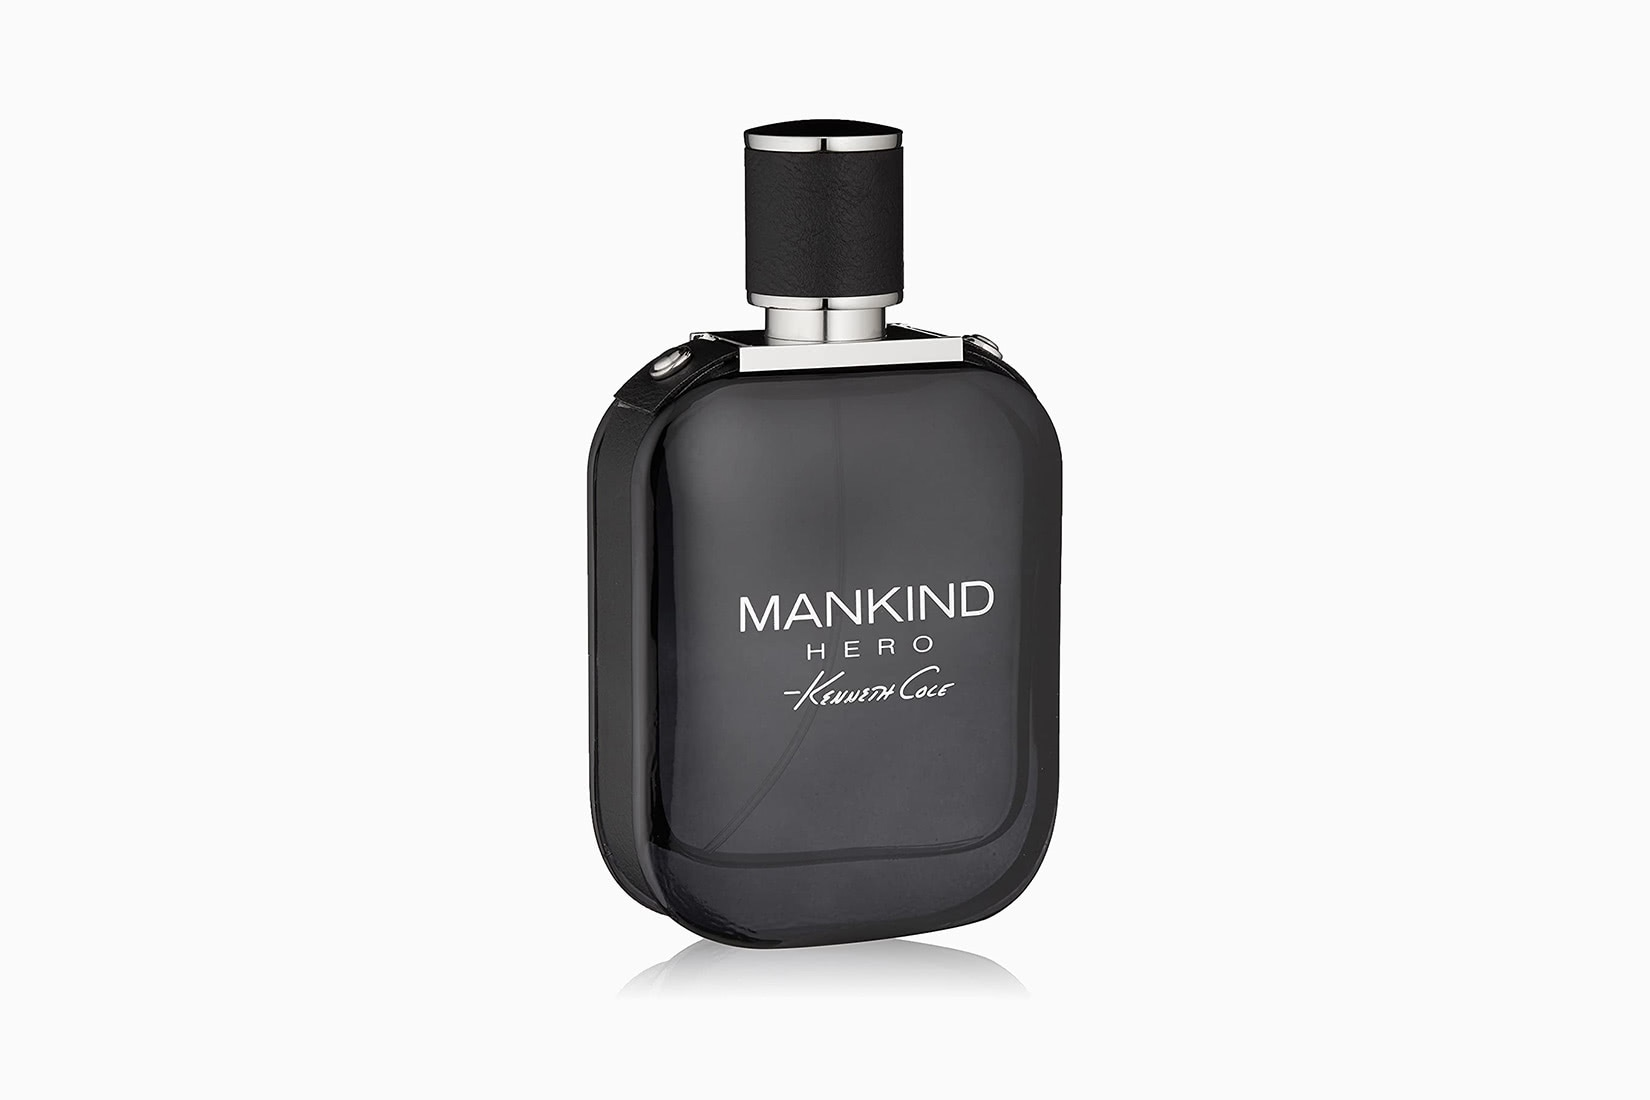 best men cologne kenneth cole mankind hero - Luxe Digital